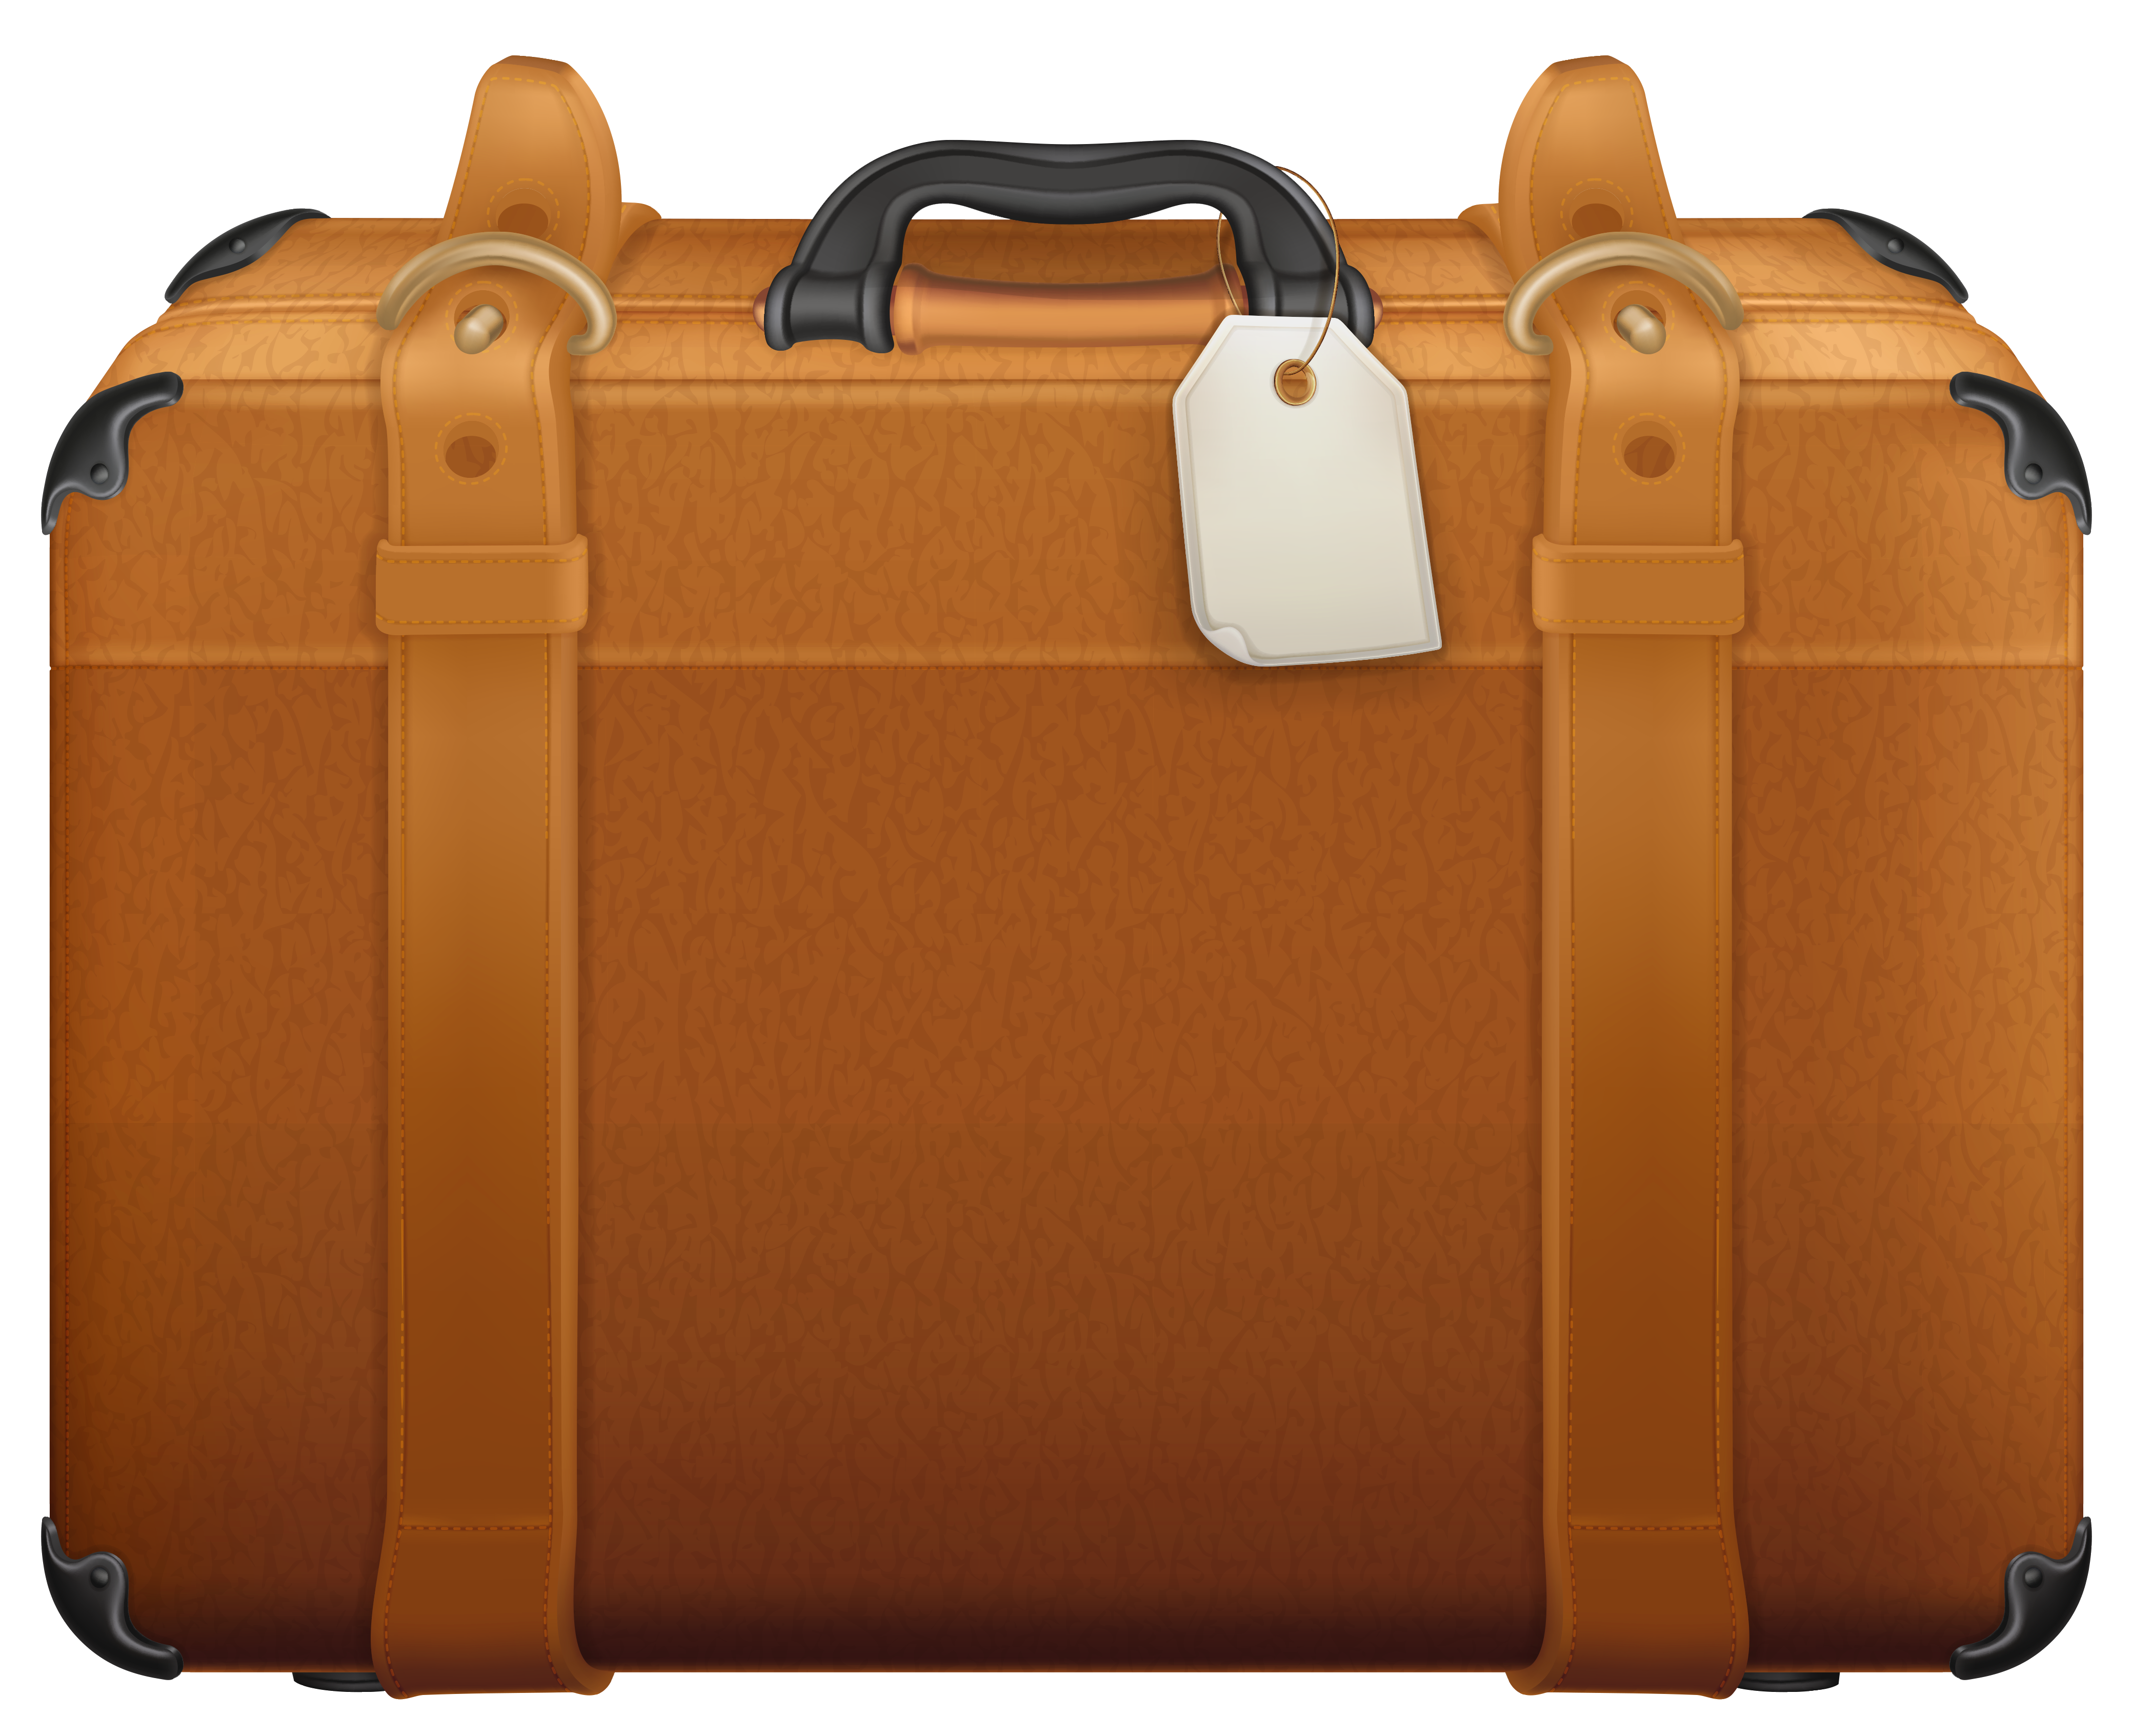 suitcases clipart clipground Vintage Travel Luggage Vintage Look Luggage